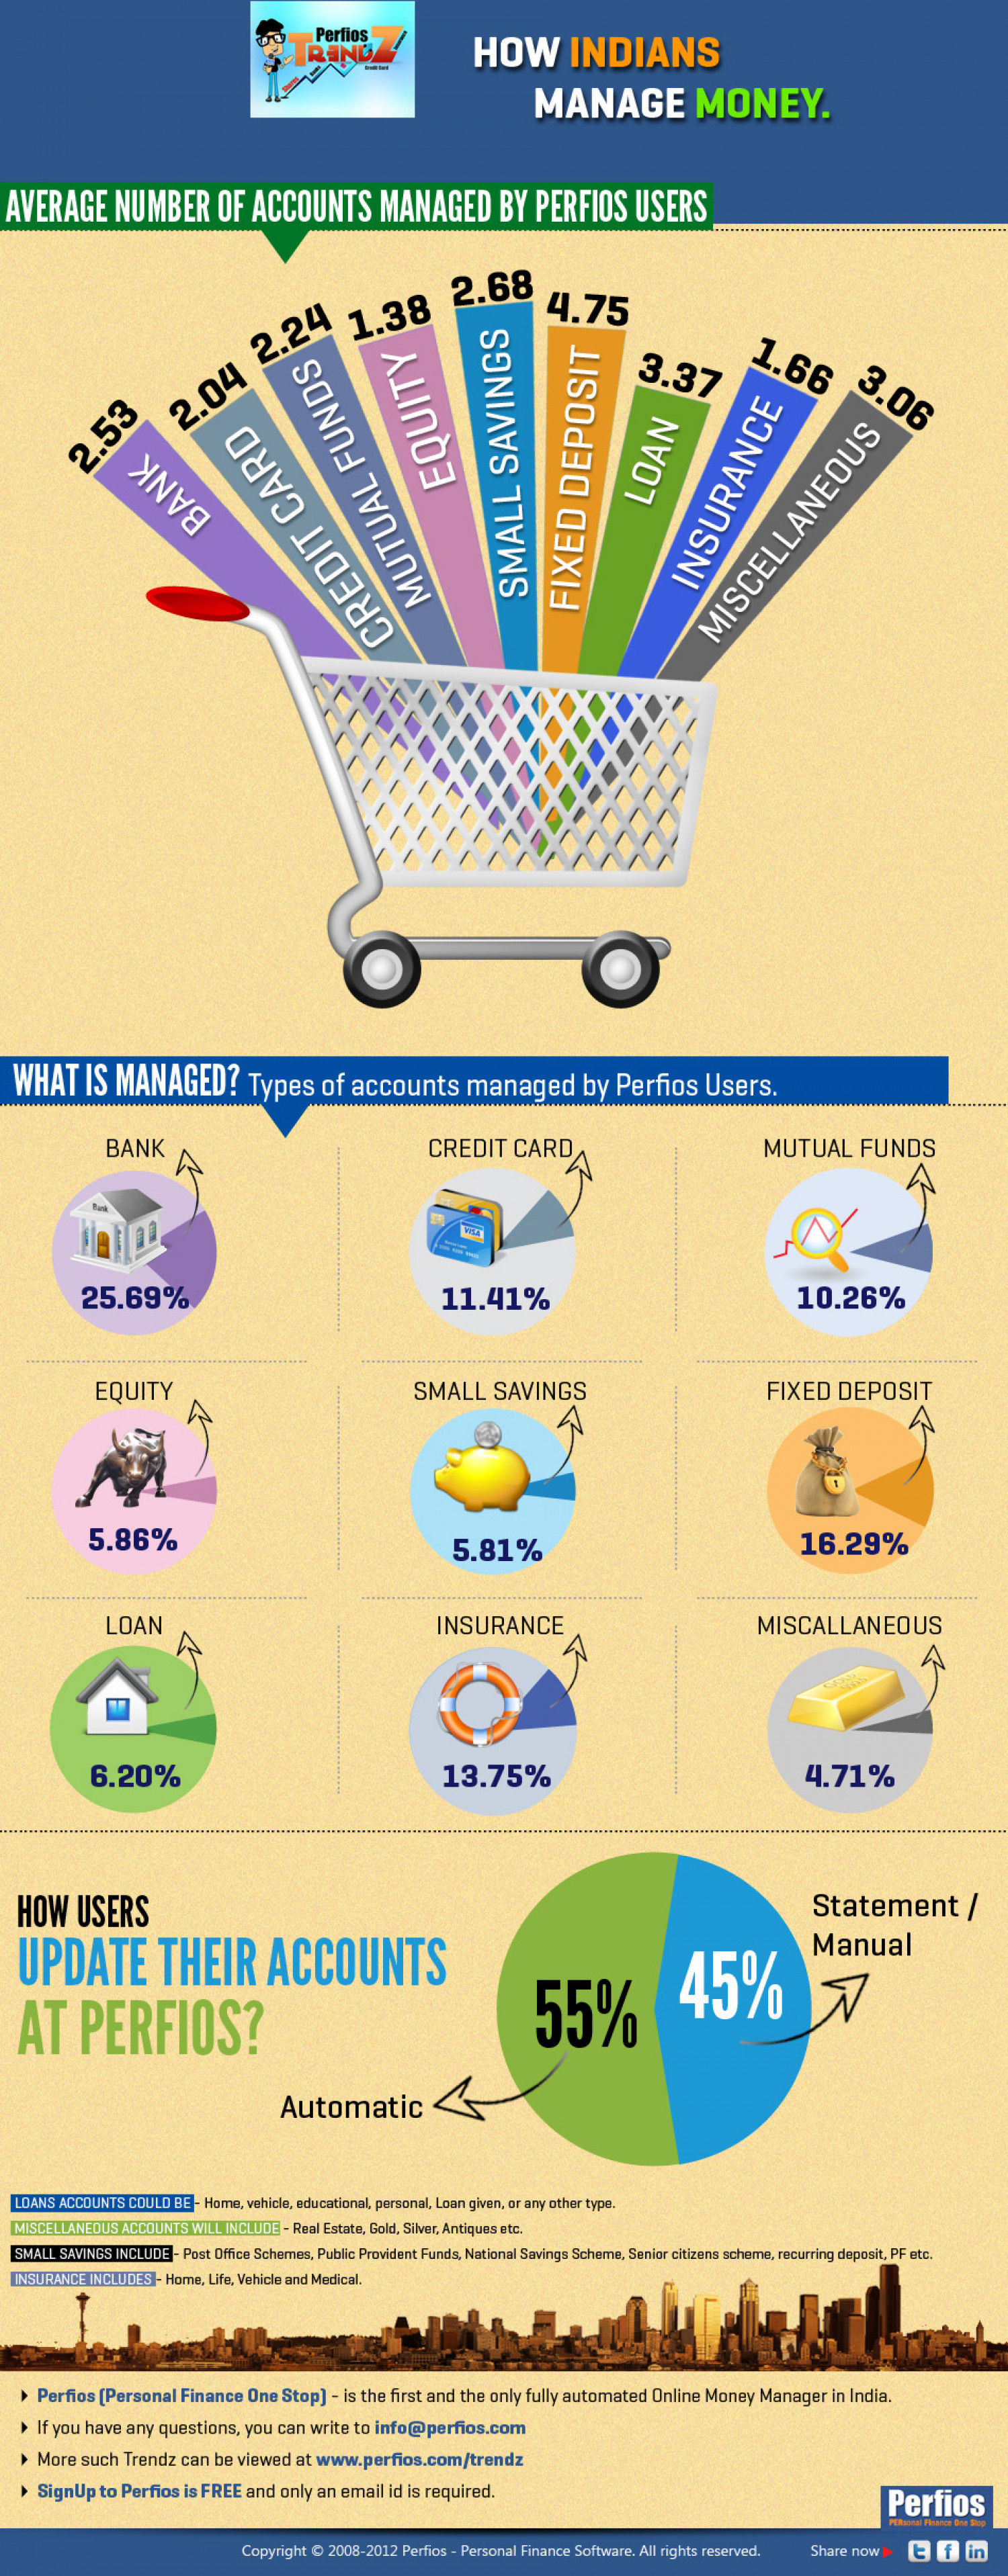 How do Indians Manage Money? Infographic